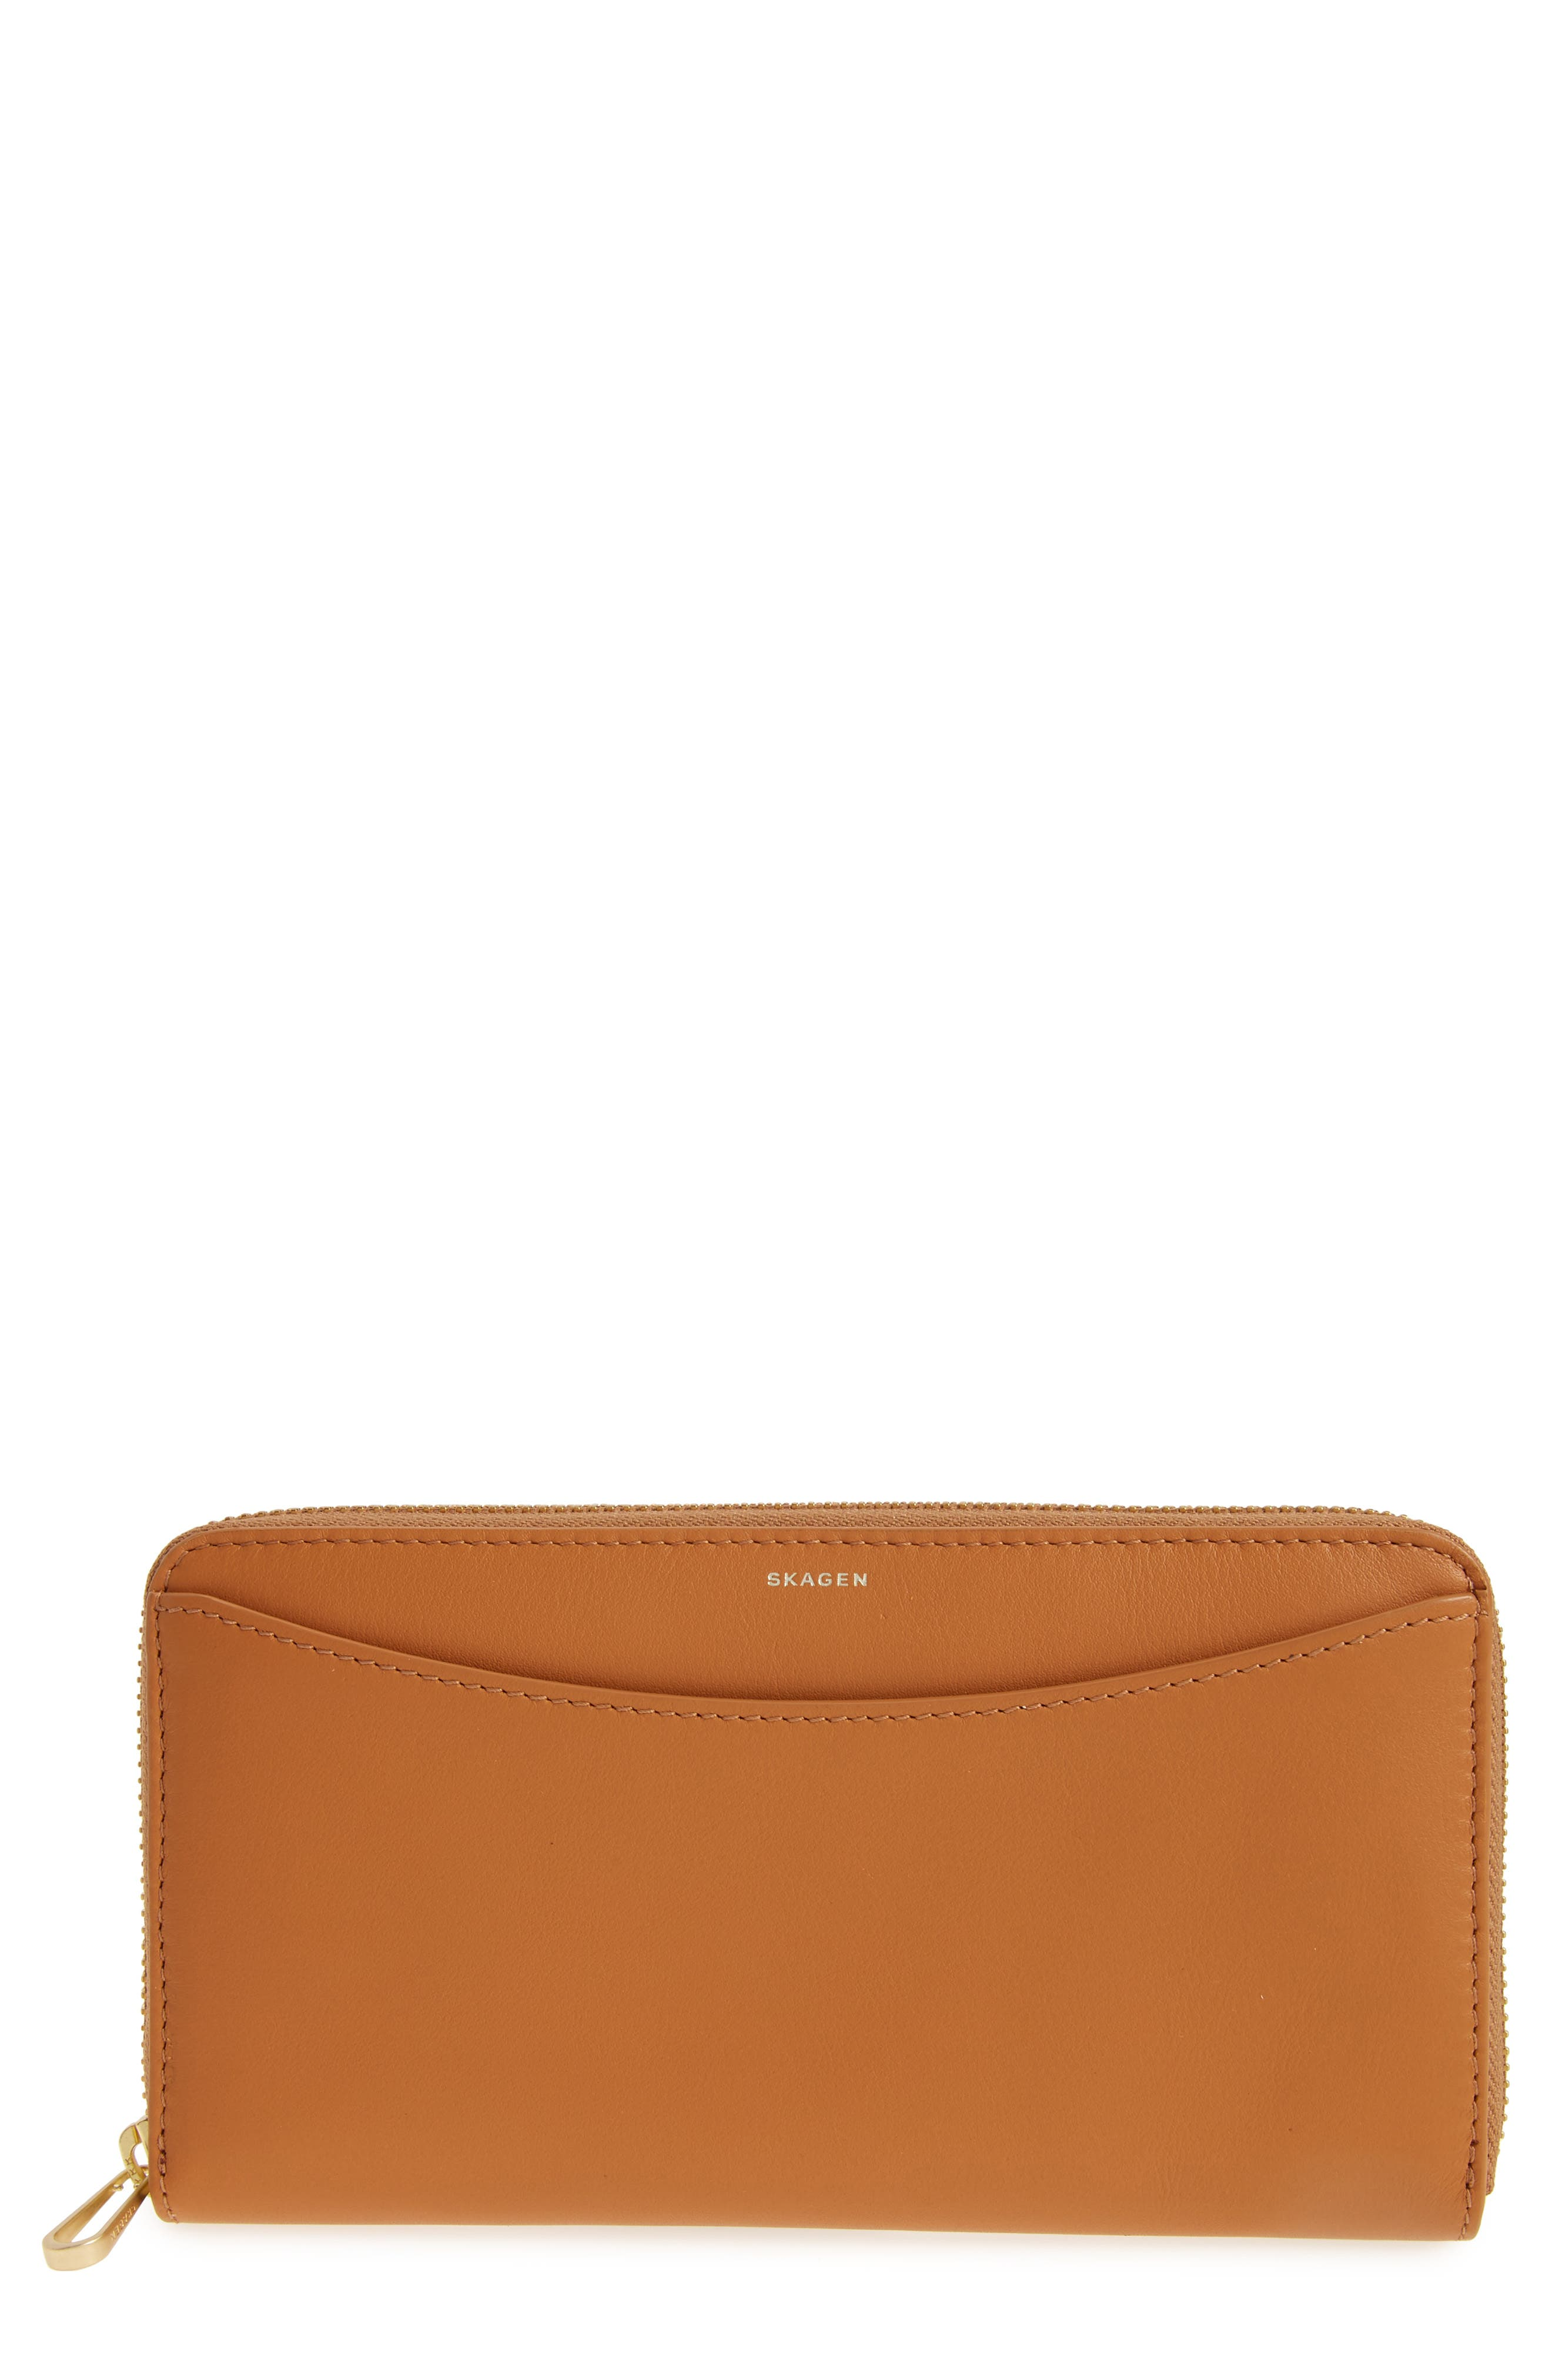 Leather Continental Wallet,                             Main thumbnail 1, color,                             Tan